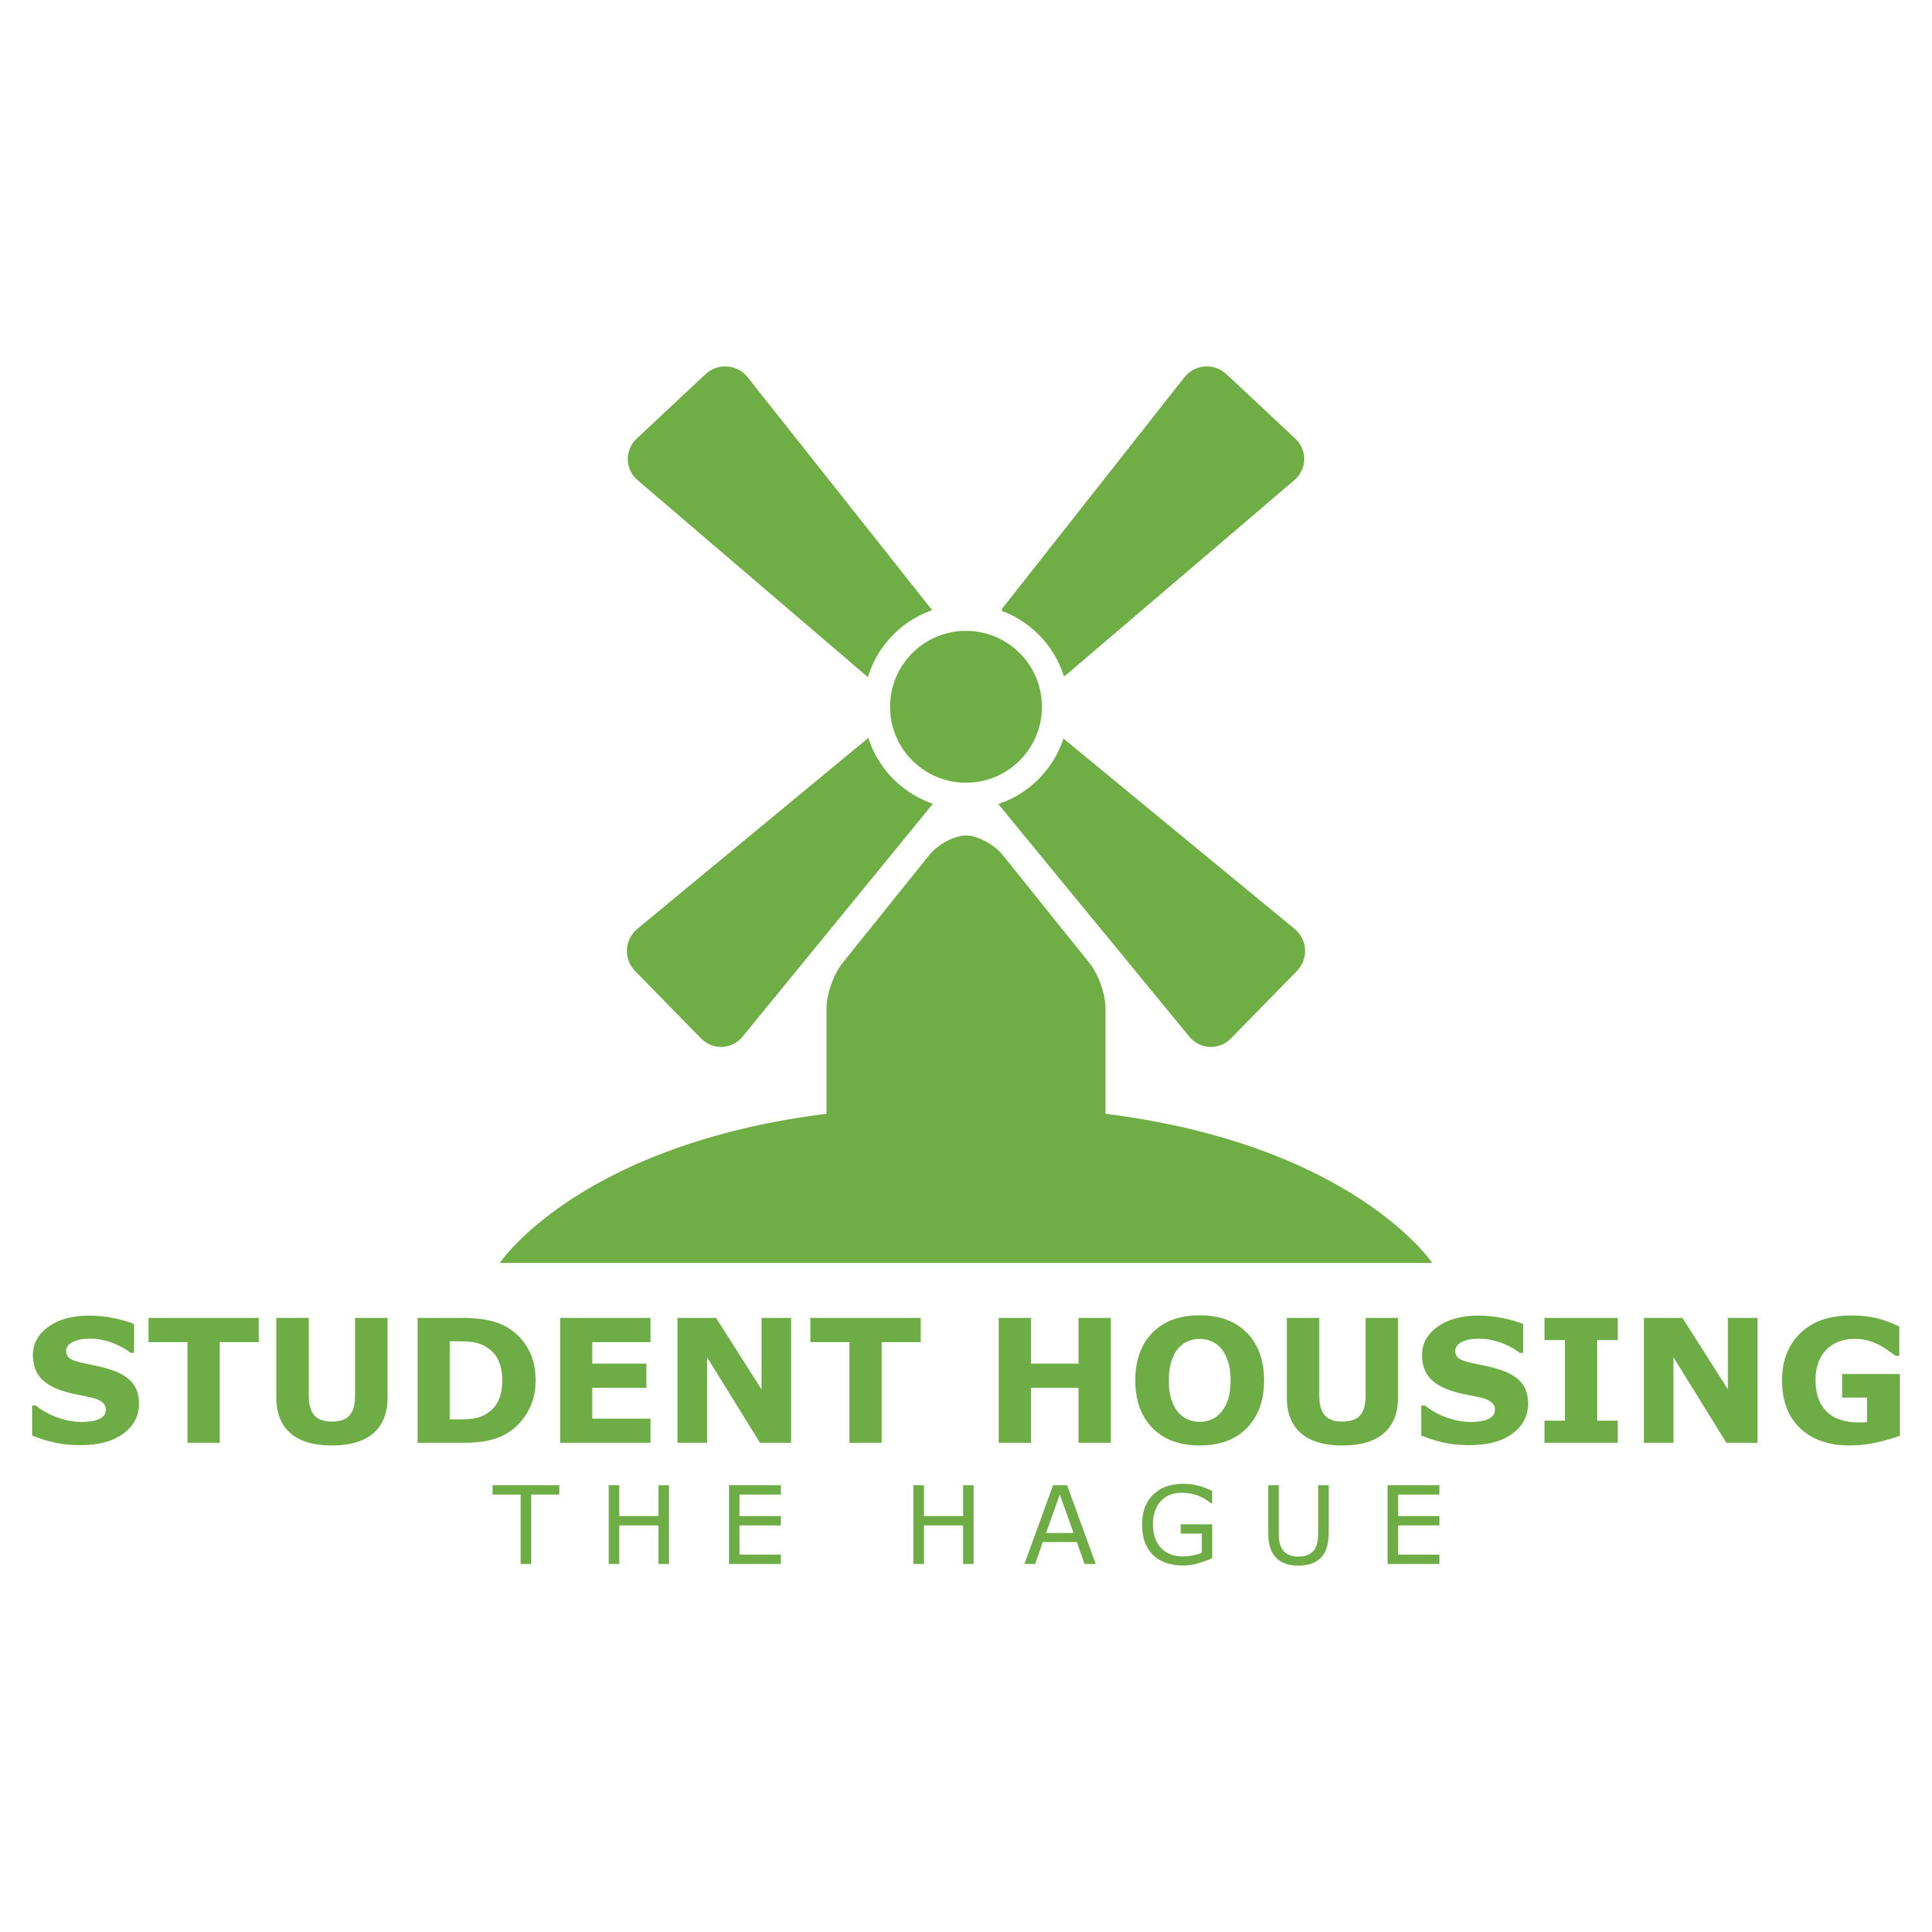 Student housing the hague